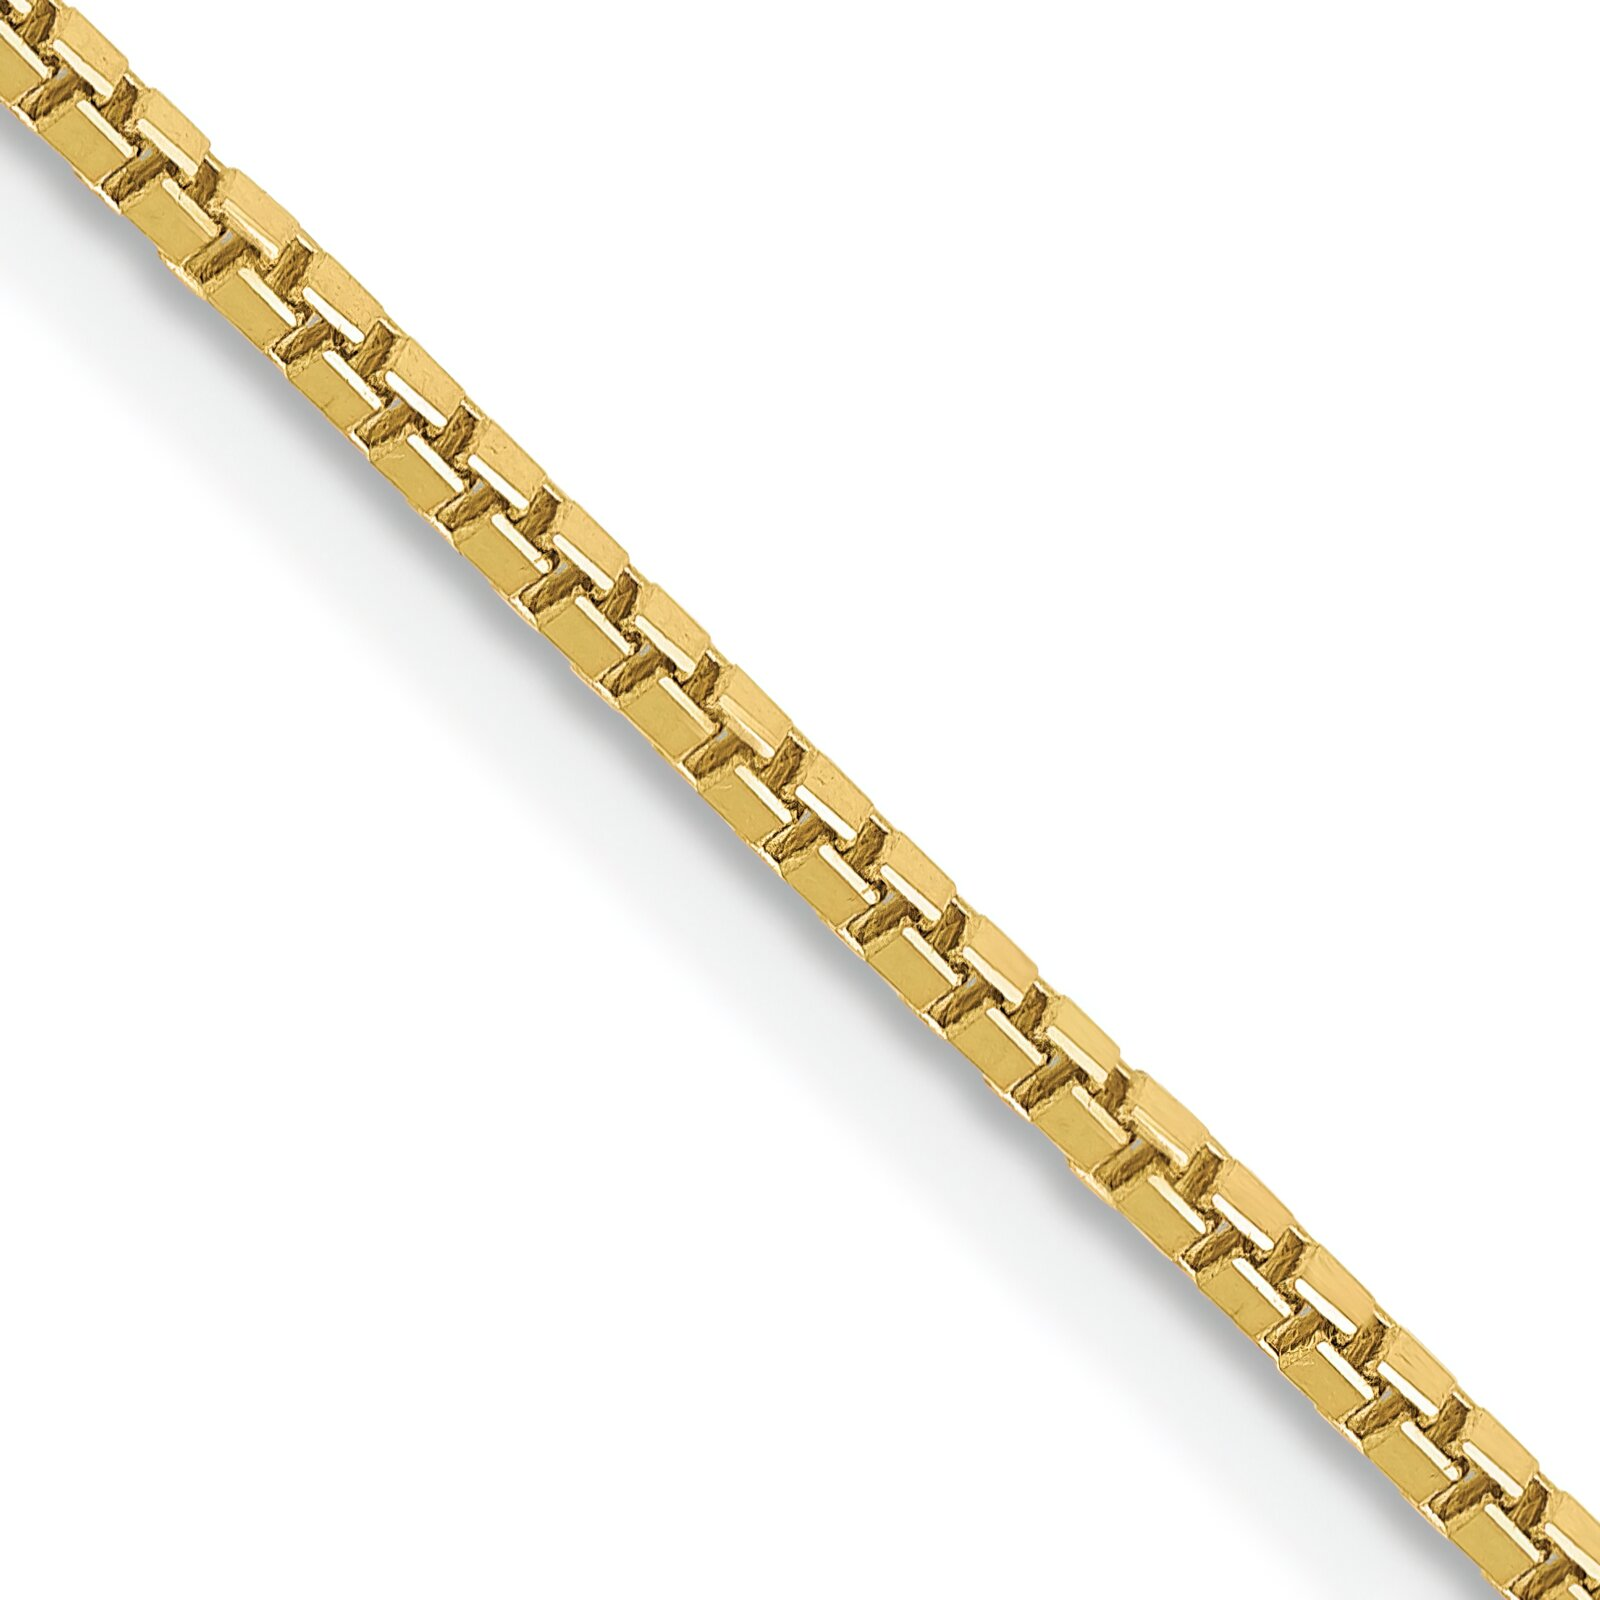 "Findingking 10K Yellow Gold 1.3mm Box Chain Necklace Jewelry 18"" at Sears.com"